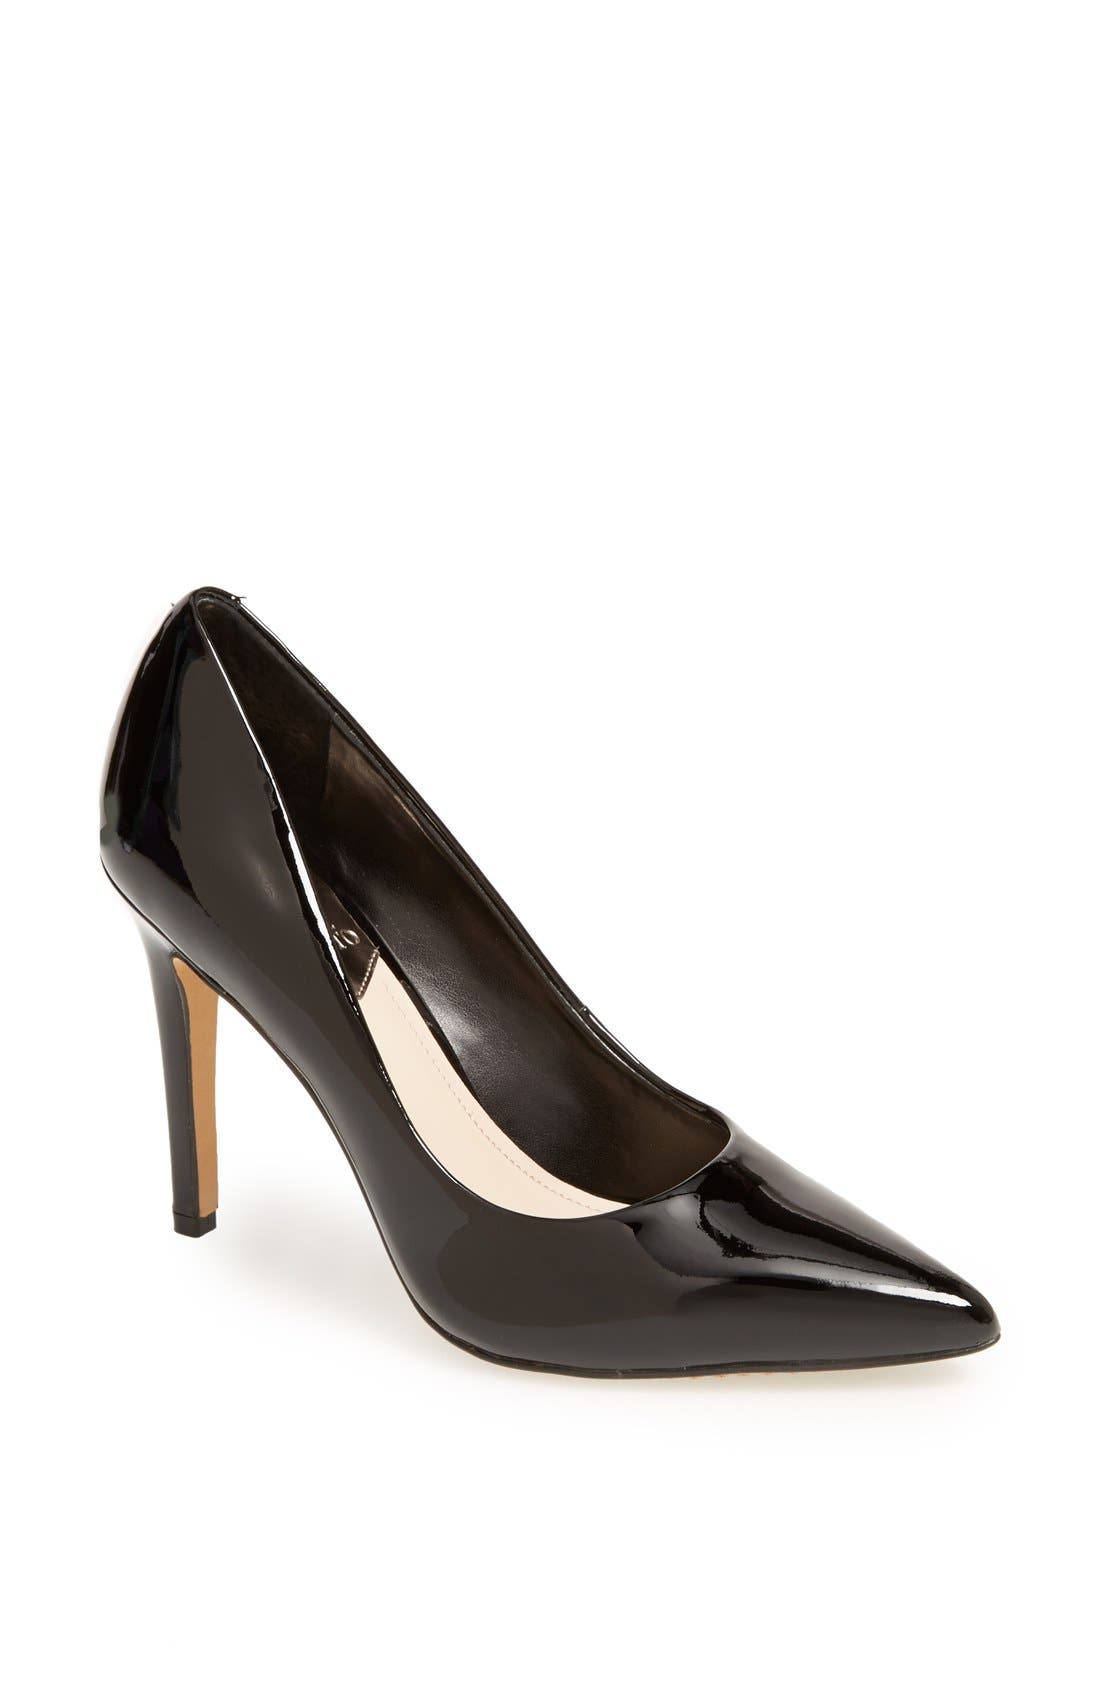 Alternate Image 1 Selected - Vince Camuto 'Kain' Pump